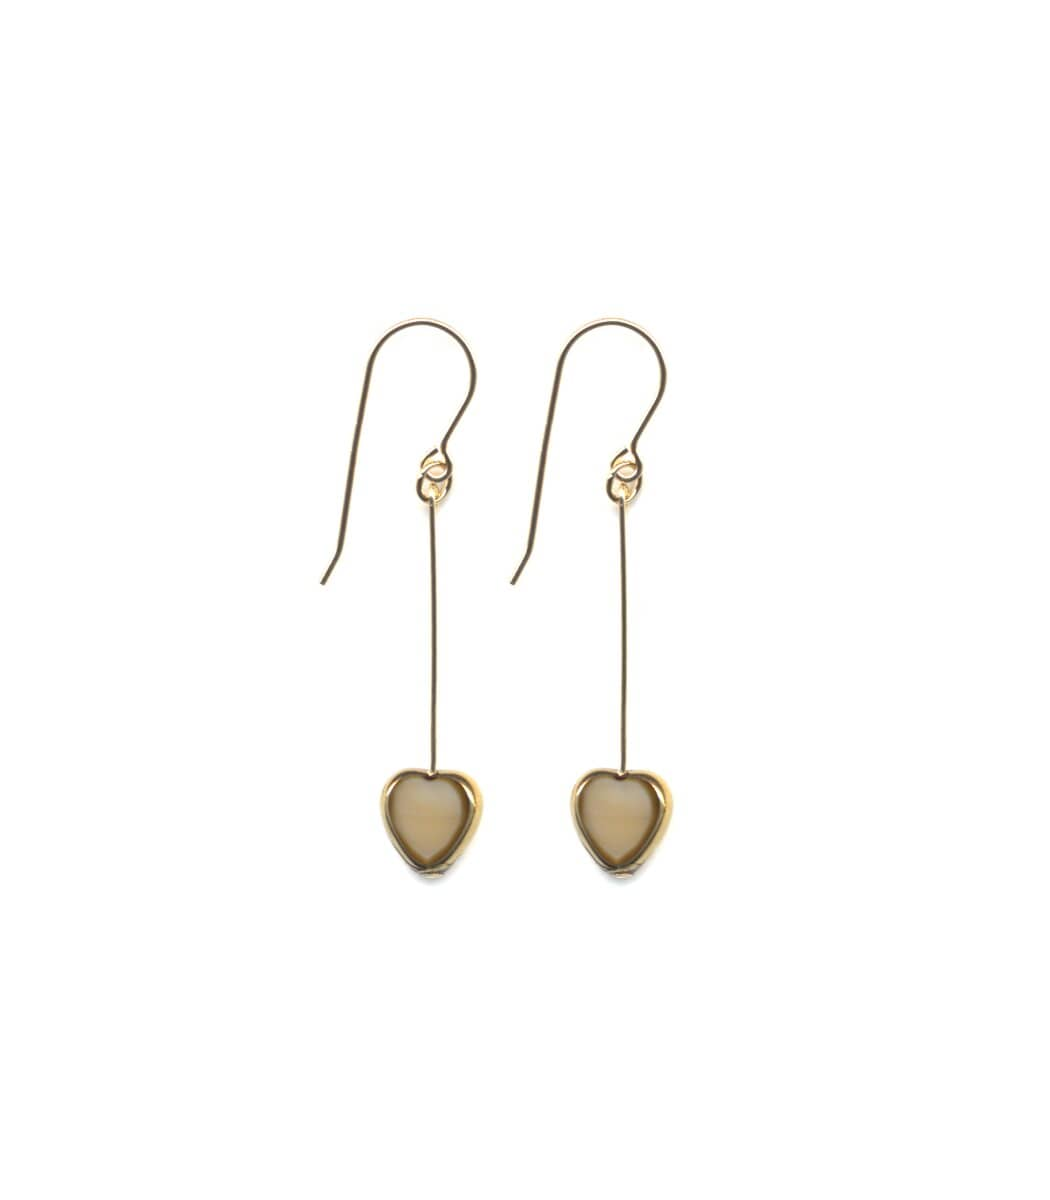 Irk Jewelry I. Ronni Kappos E1545 Beige Heart Drop Earrings